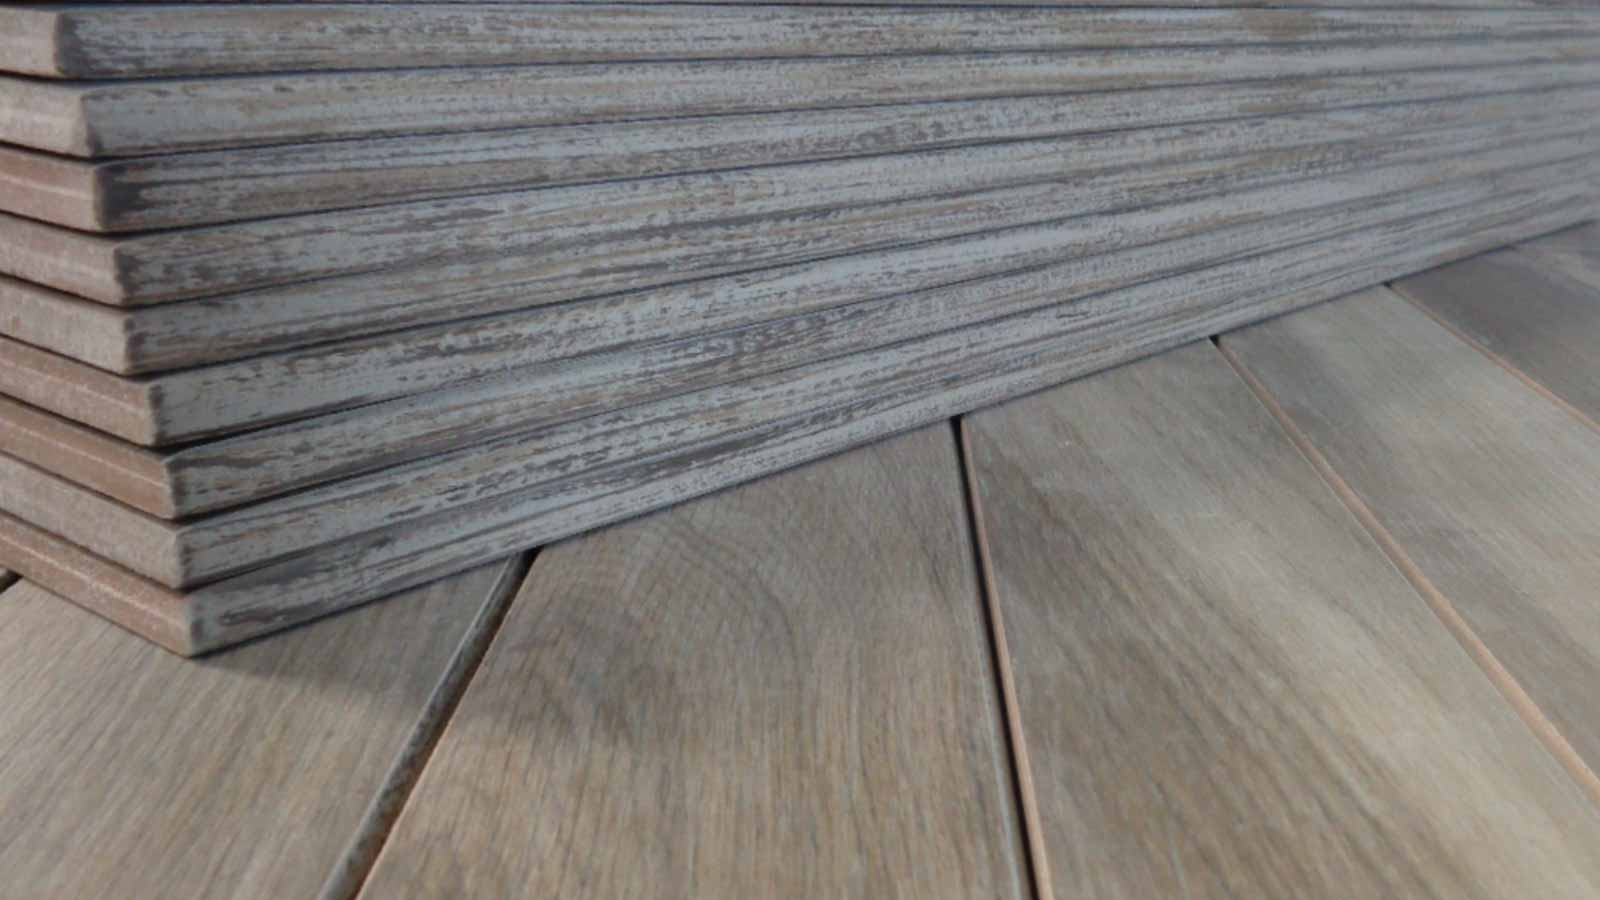 Smartly Abn Wo Wood Look Bullnose Planks Wide3 Bullnose Tile Sizes Bullnose Tile Home Depot houzz 01 Bull Nose Tile